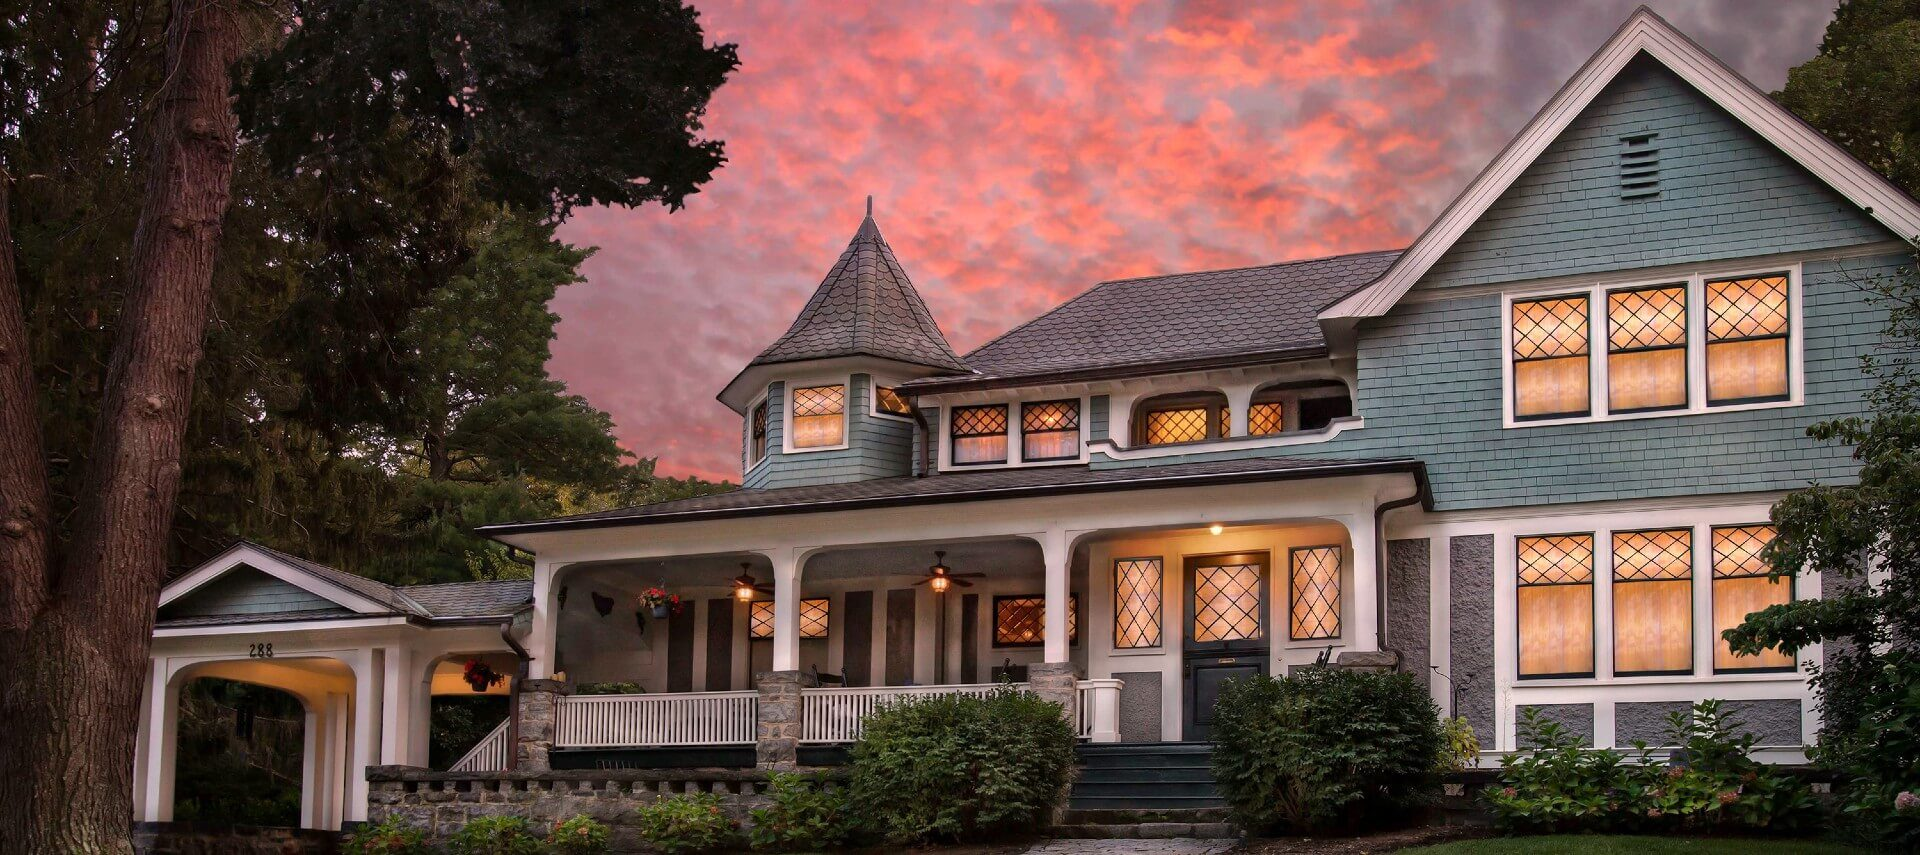 Front facade of a home with large front porch, white columns and soft glowing light coming from the many windows